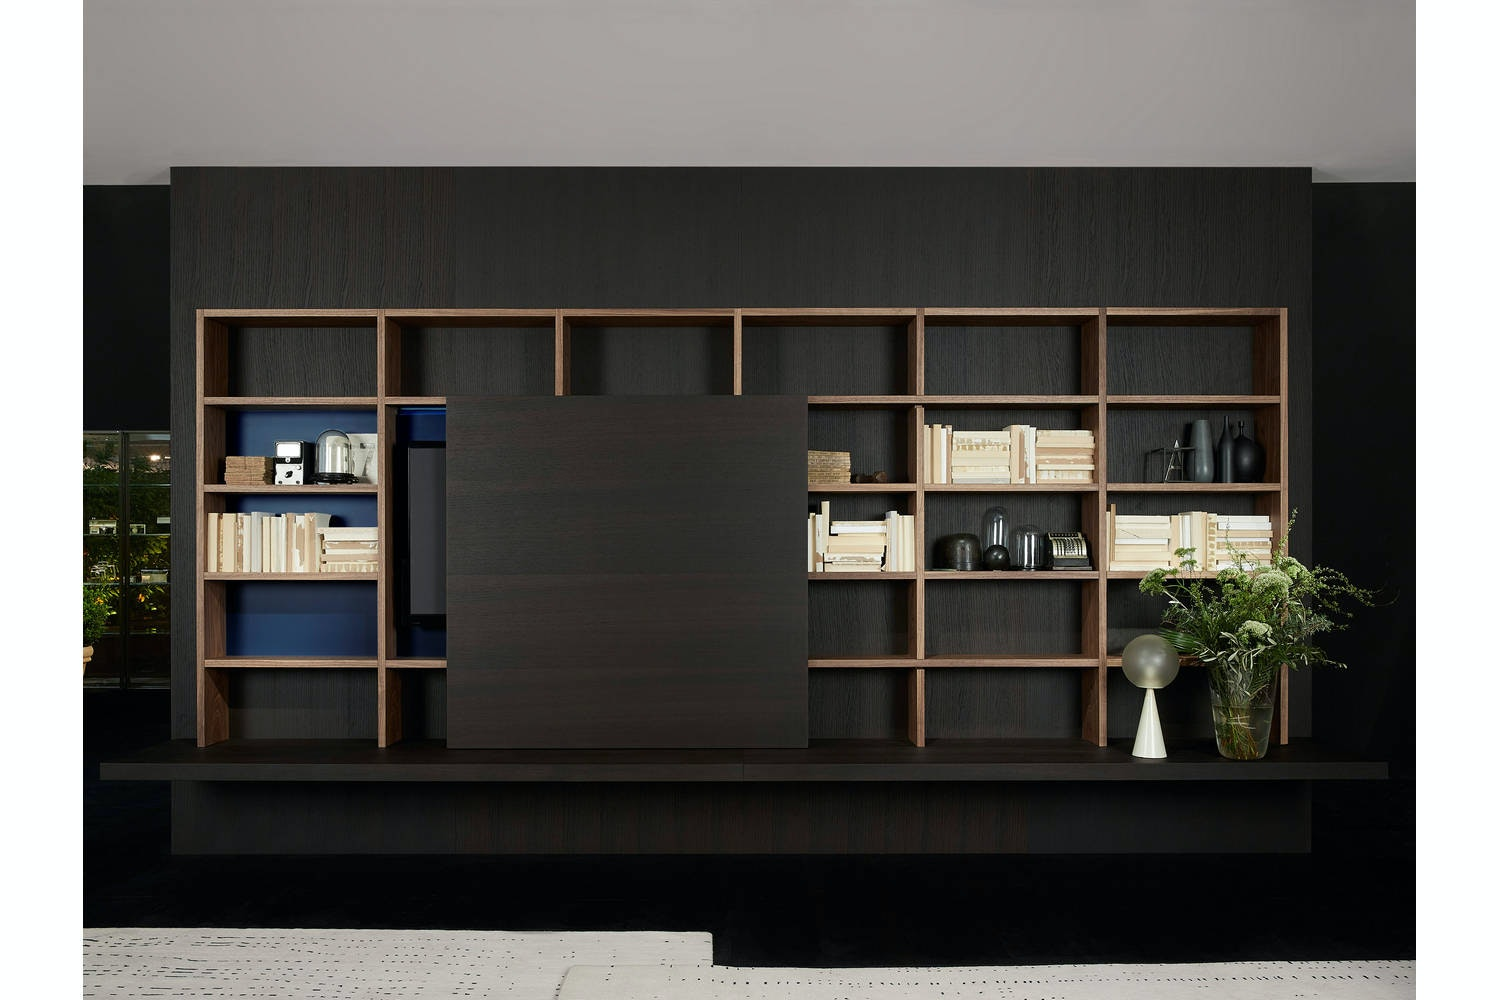 System Hanging by Piero Lissoni for Porro